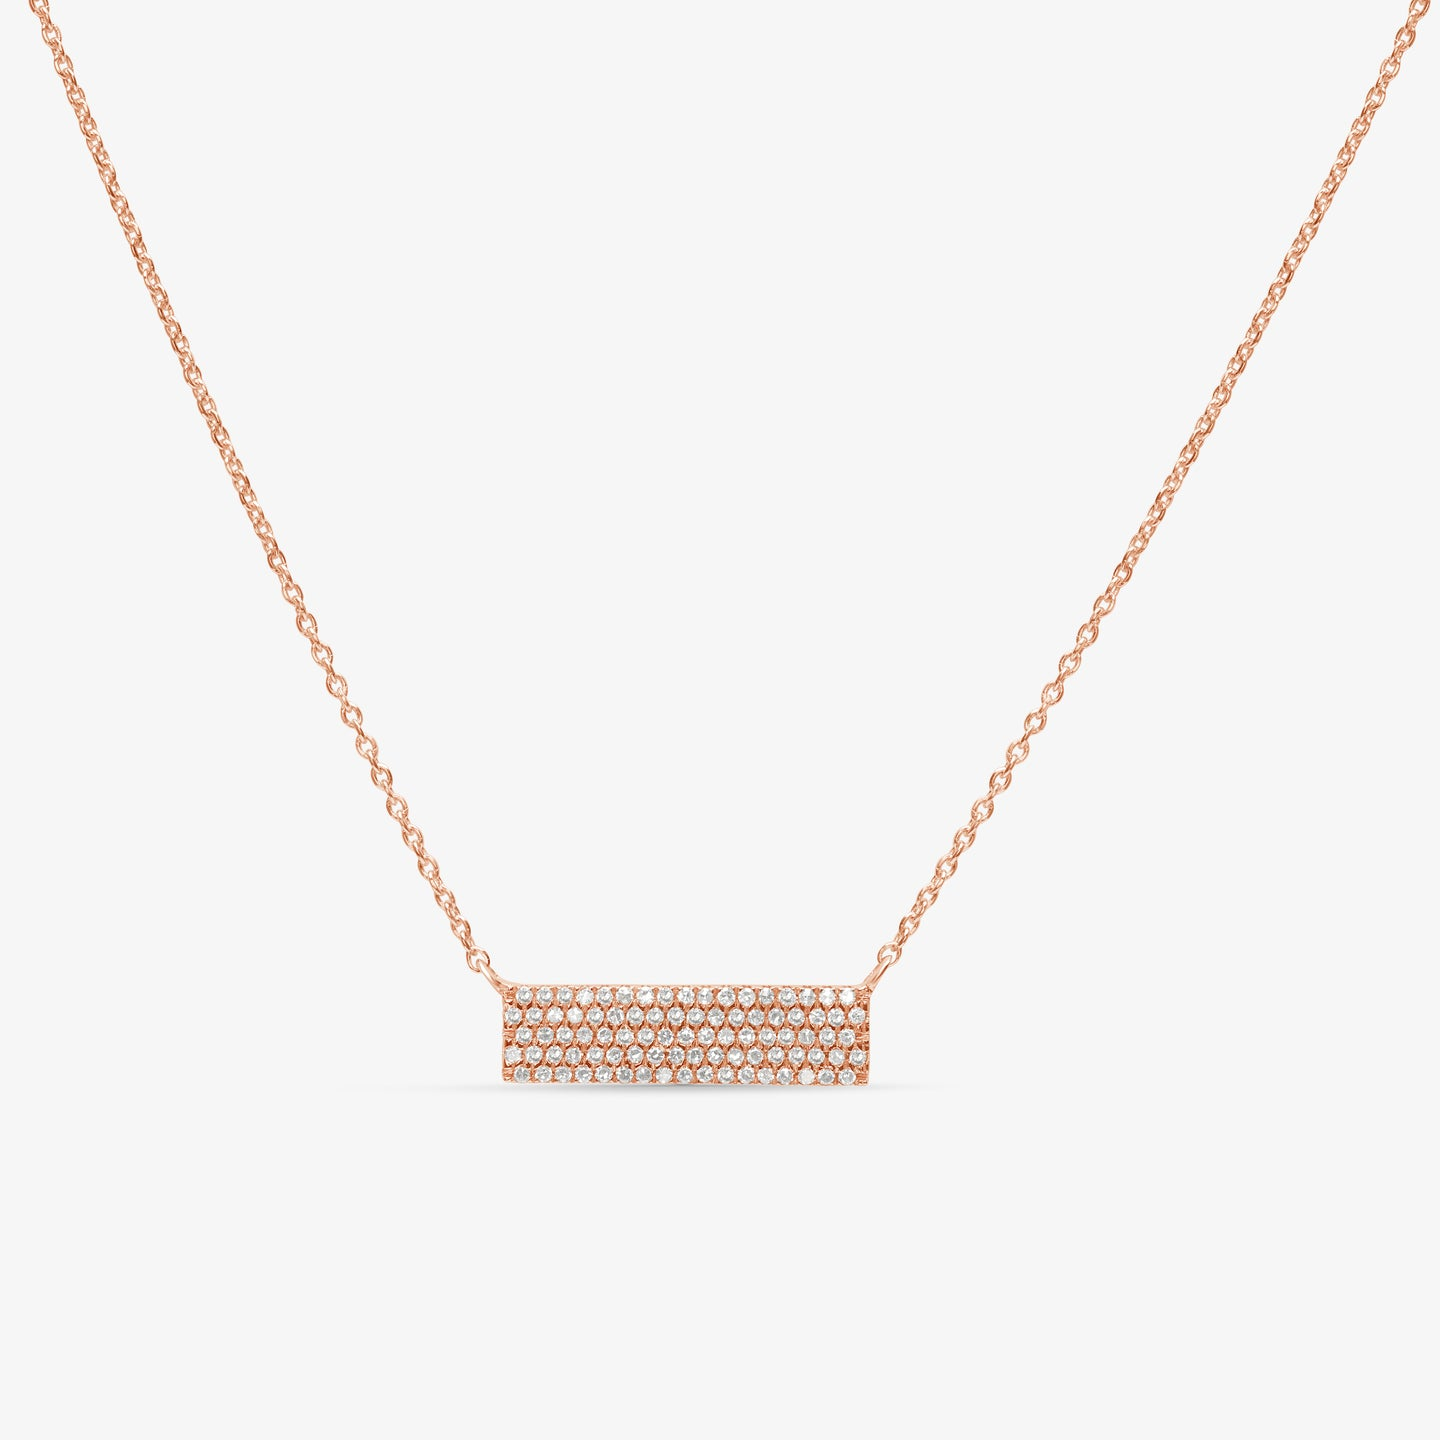 Diamond Studded 5-Row Bar Pendant Layer Necklace - estellacollection